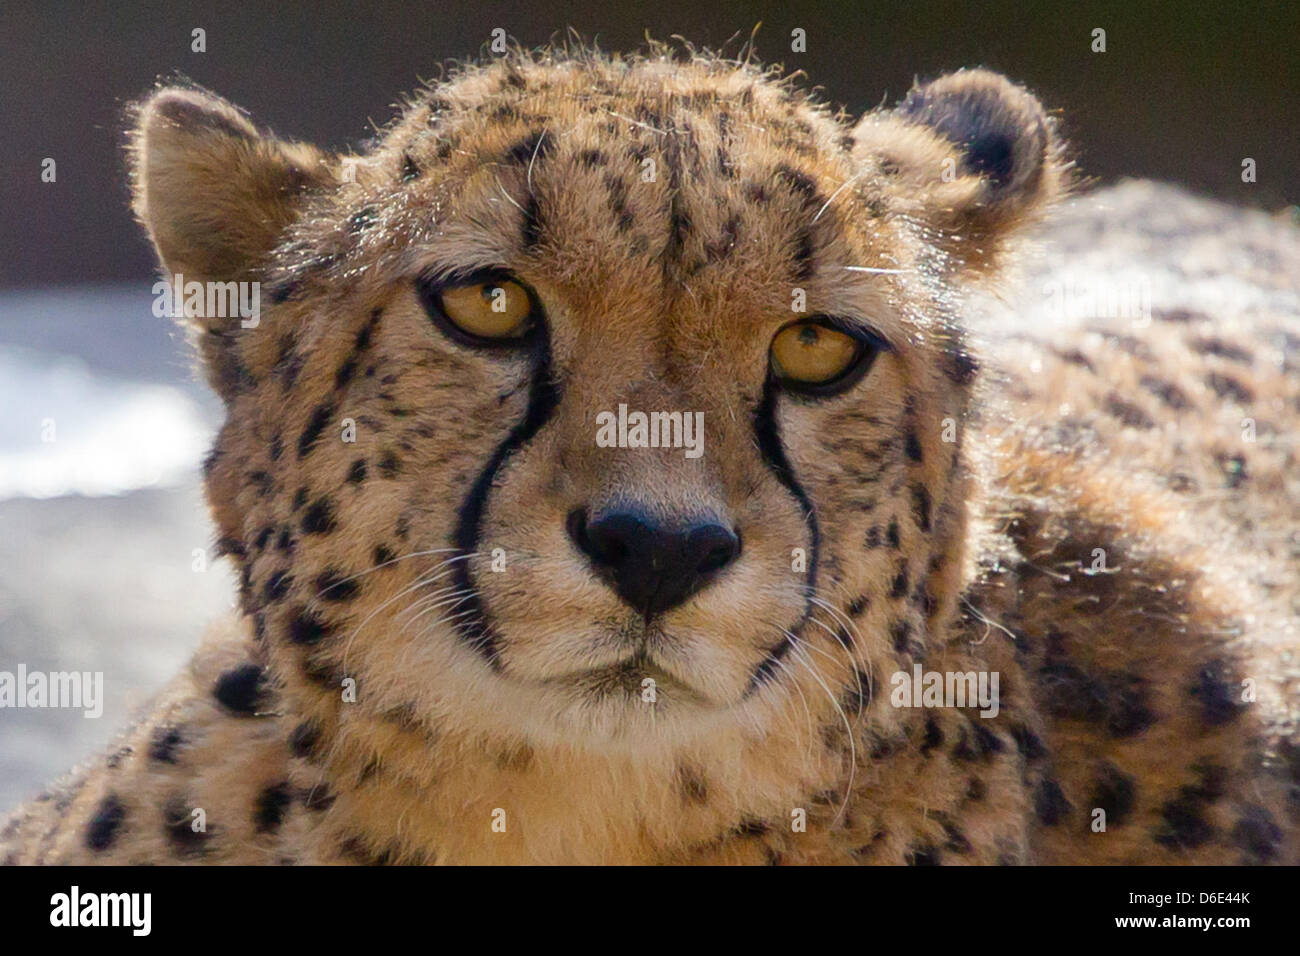 Cheetah 'Kelly' suns herself in her enclosure at the zoo in Nuremberg, Germany, 18 January 2012. Kelly's - Stock Image